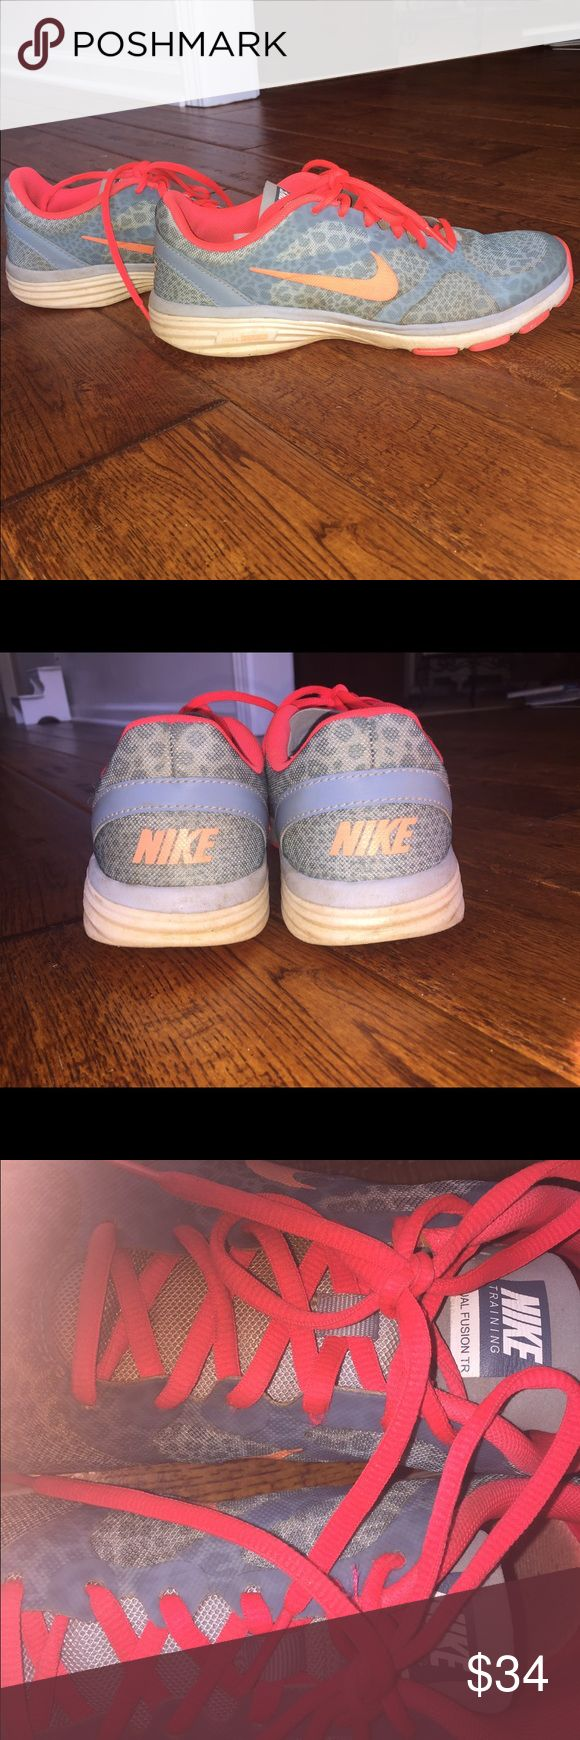 Nike tennis shoes women's 7.5 Nike women's sz 7.5 tennis shoes. Blue and coral. Great condition. Feel free to ask questions and make offers! Nike Shoes Athletic Shoes